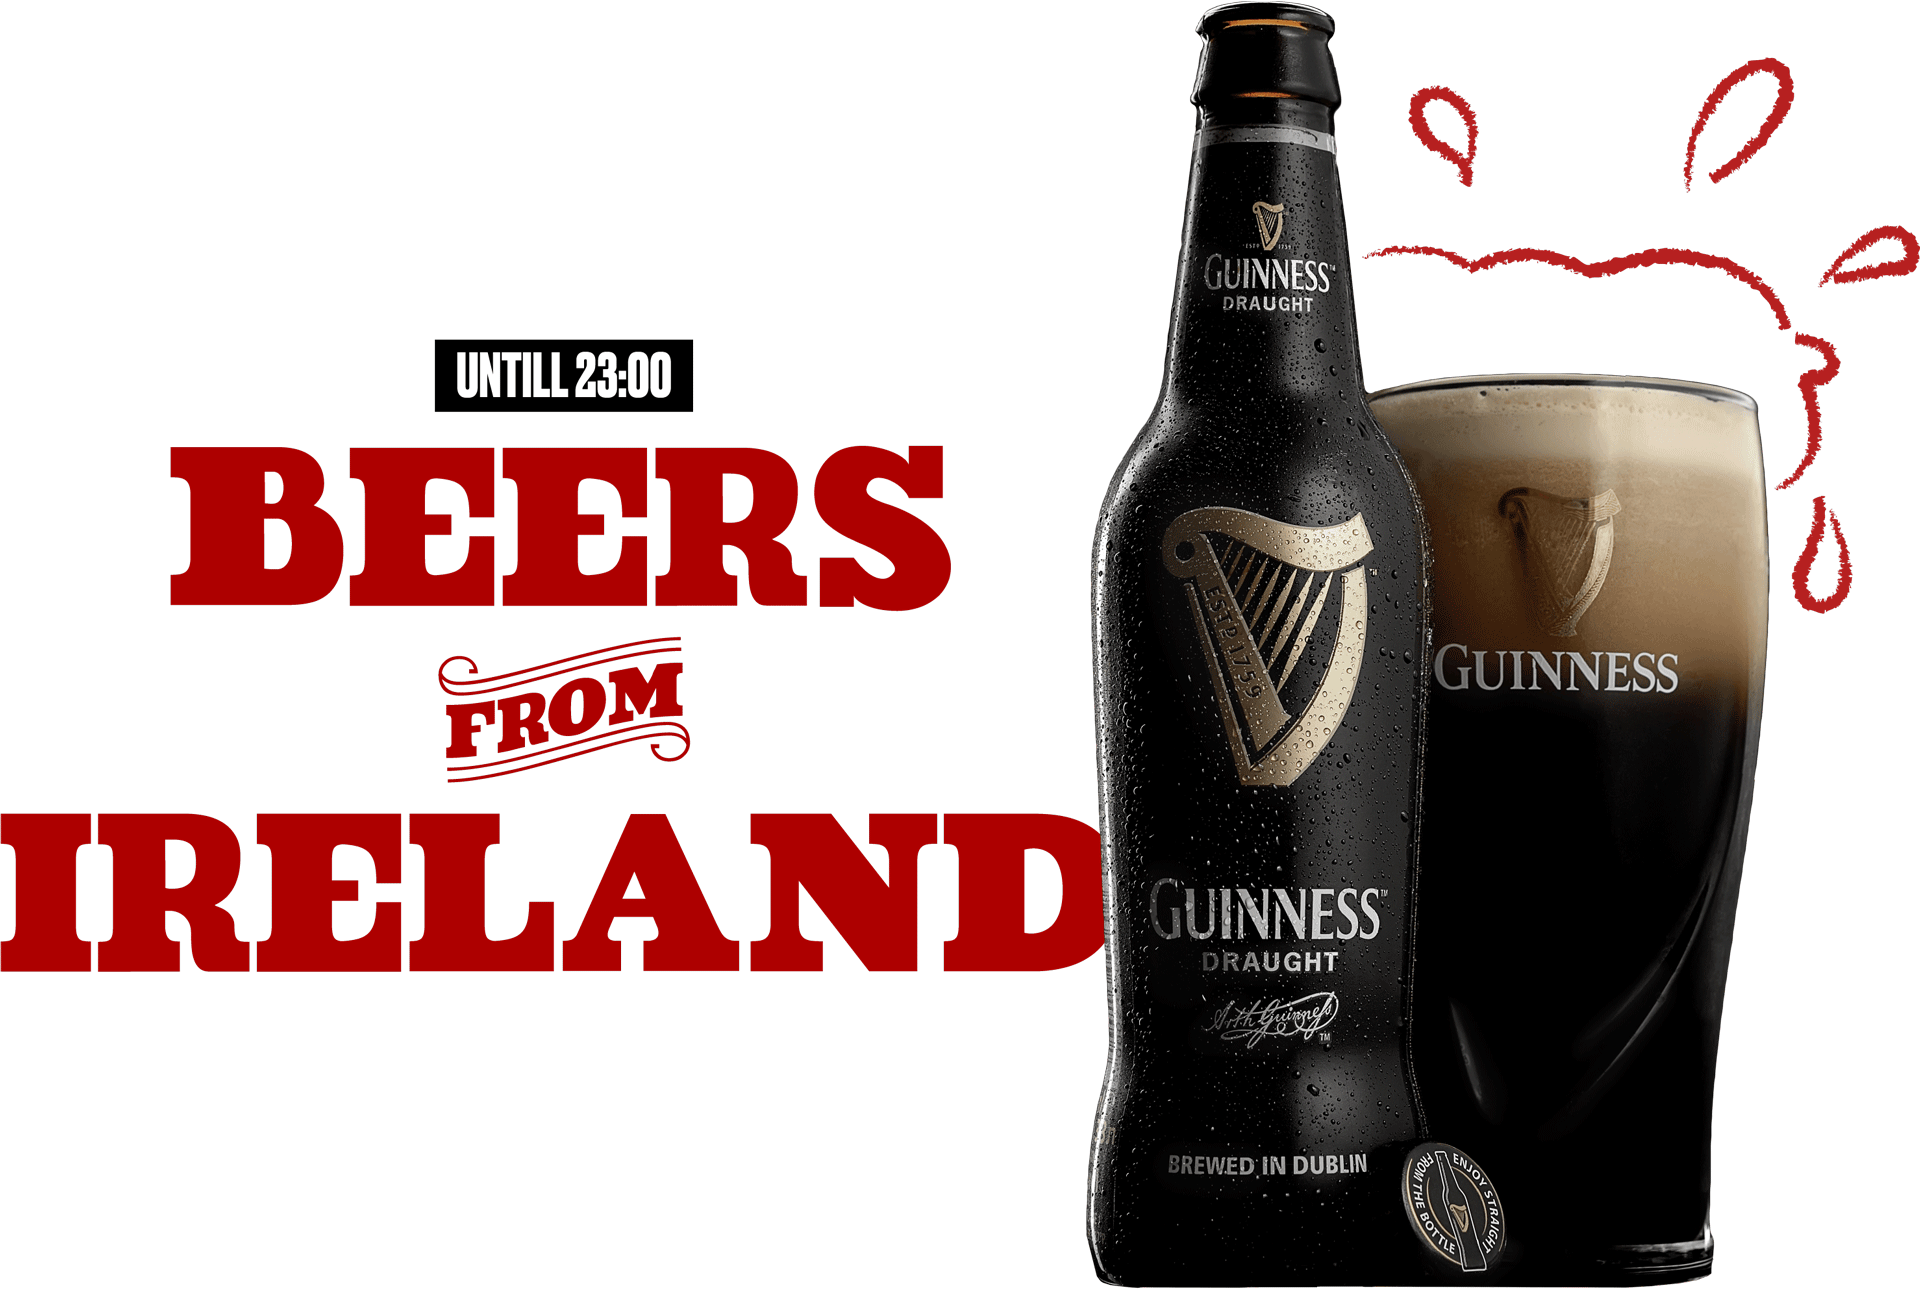 beers_from_ireland_plus_picture